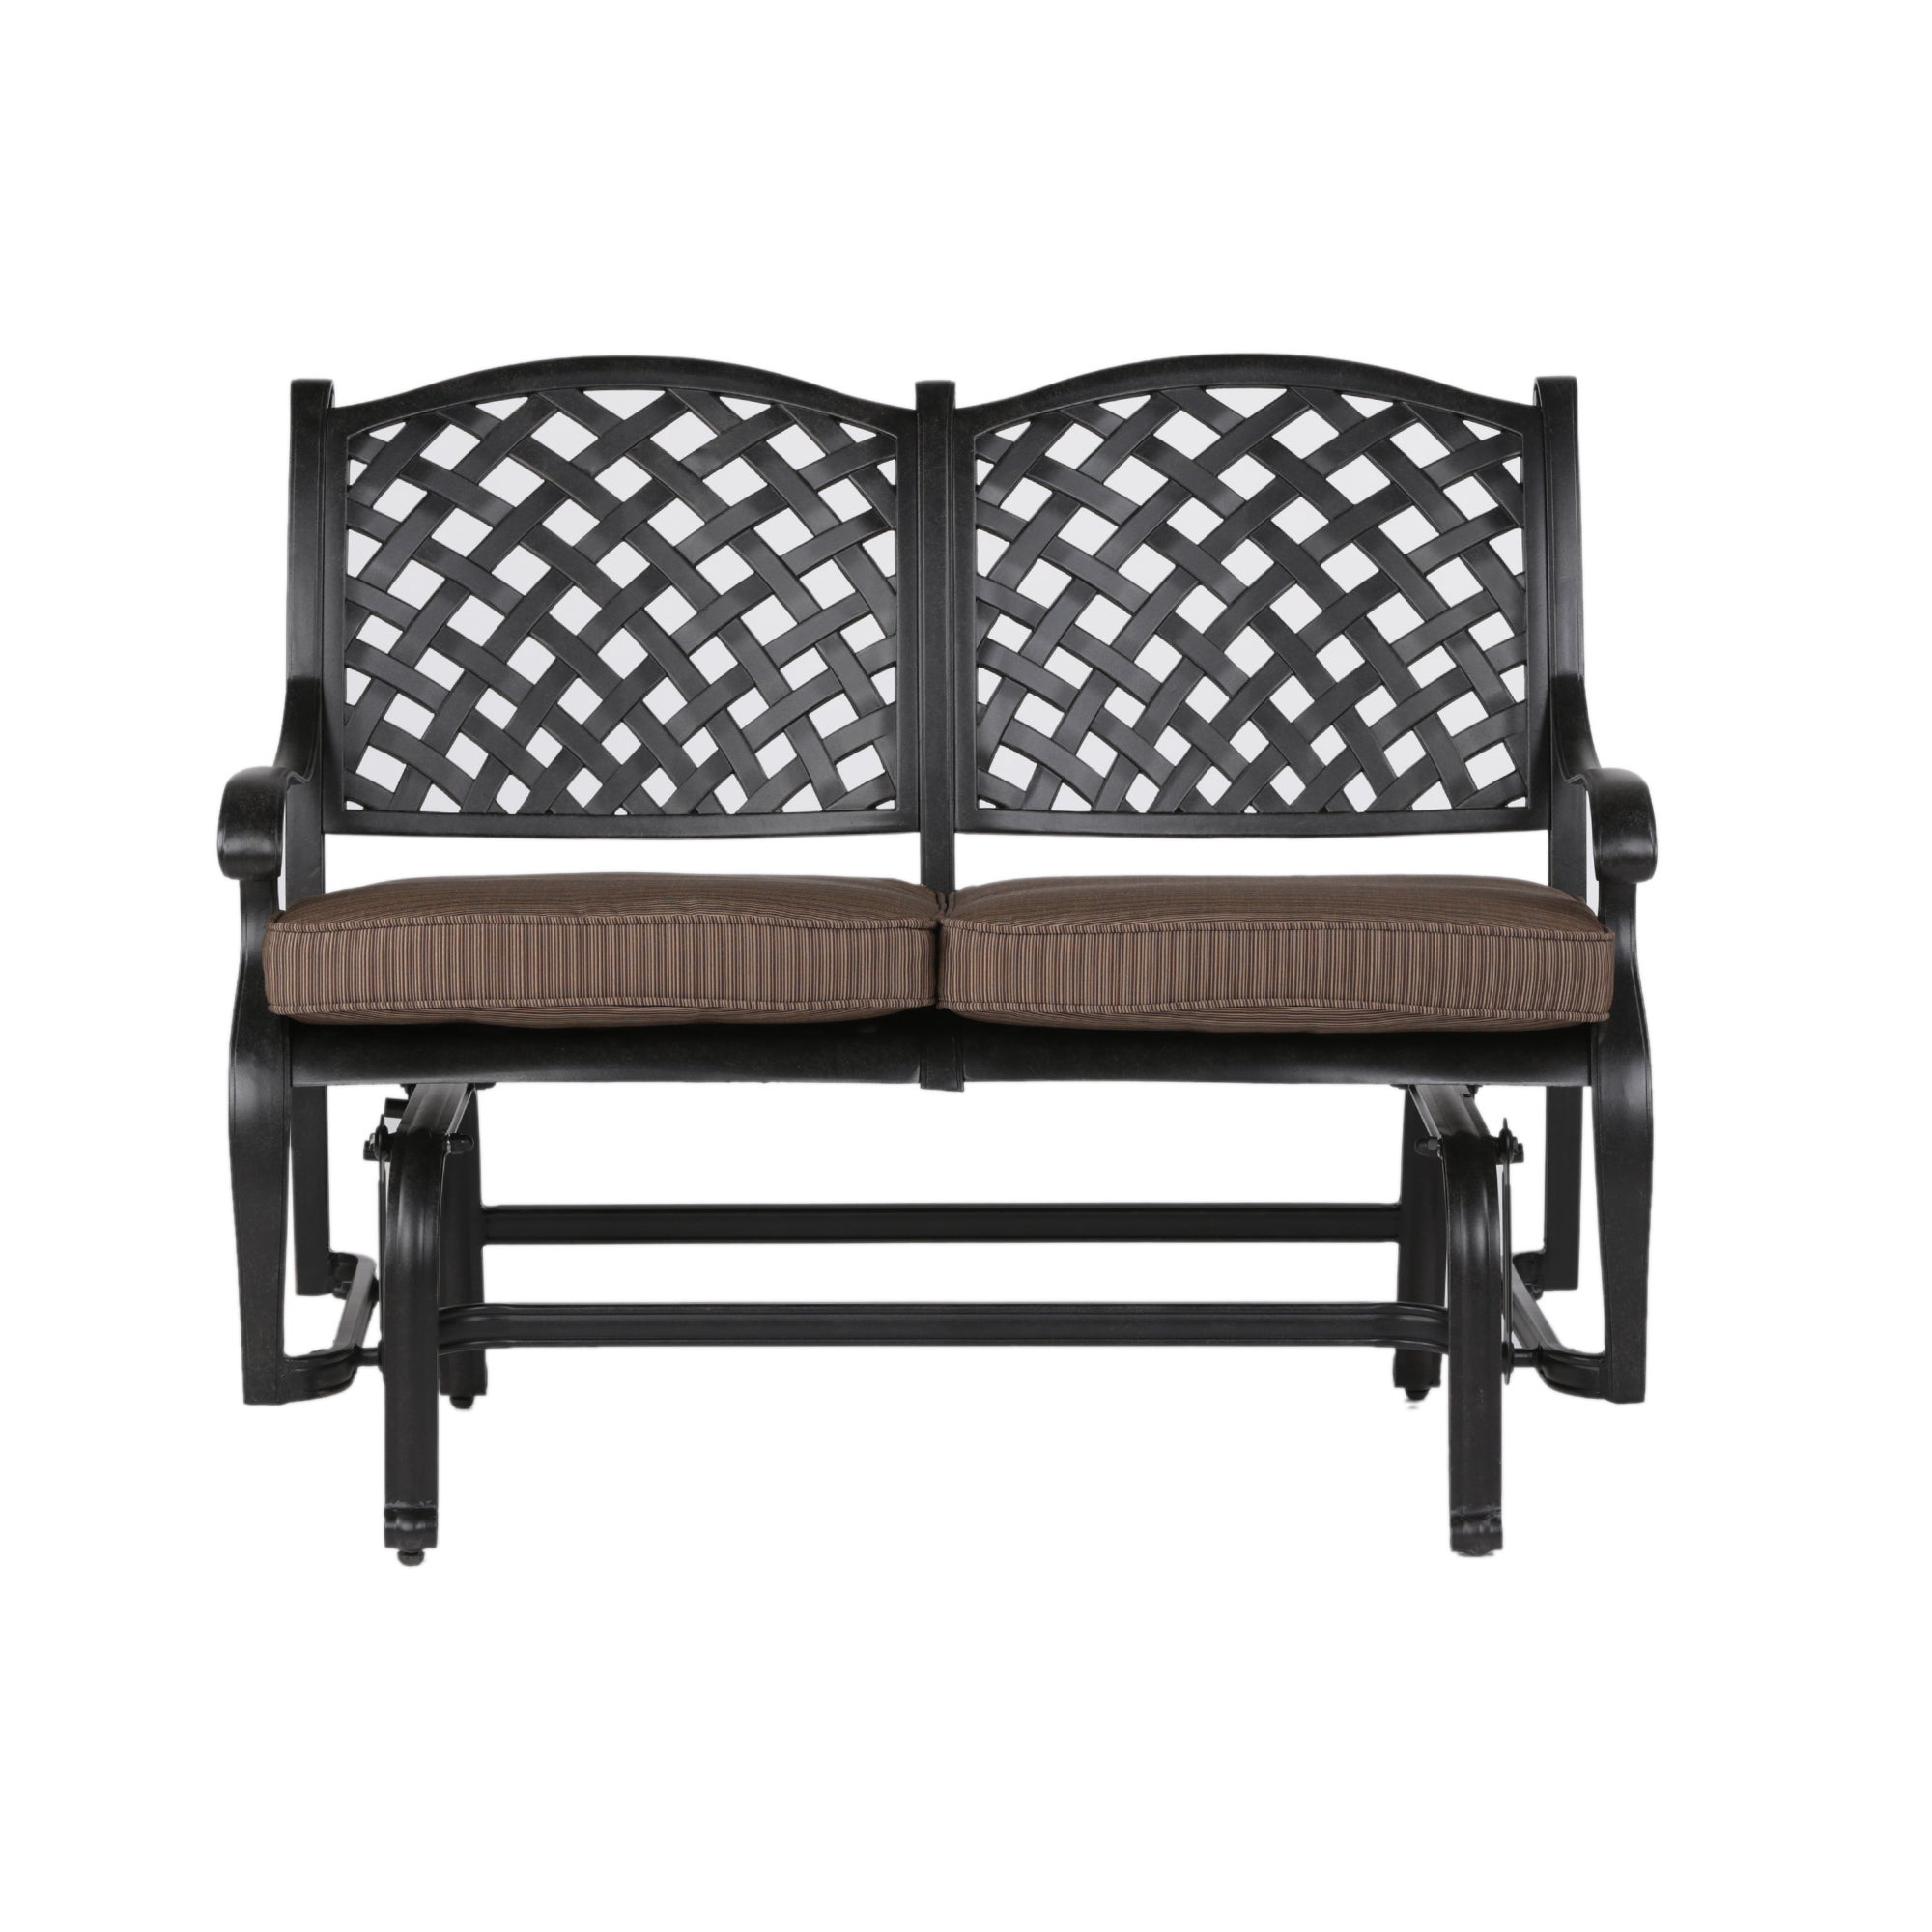 South Ponto Aluminum Bench Glider With Cushion Pertaining To Best And Newest Aluminum Glider Benches With Cushion (View 7 of 30)